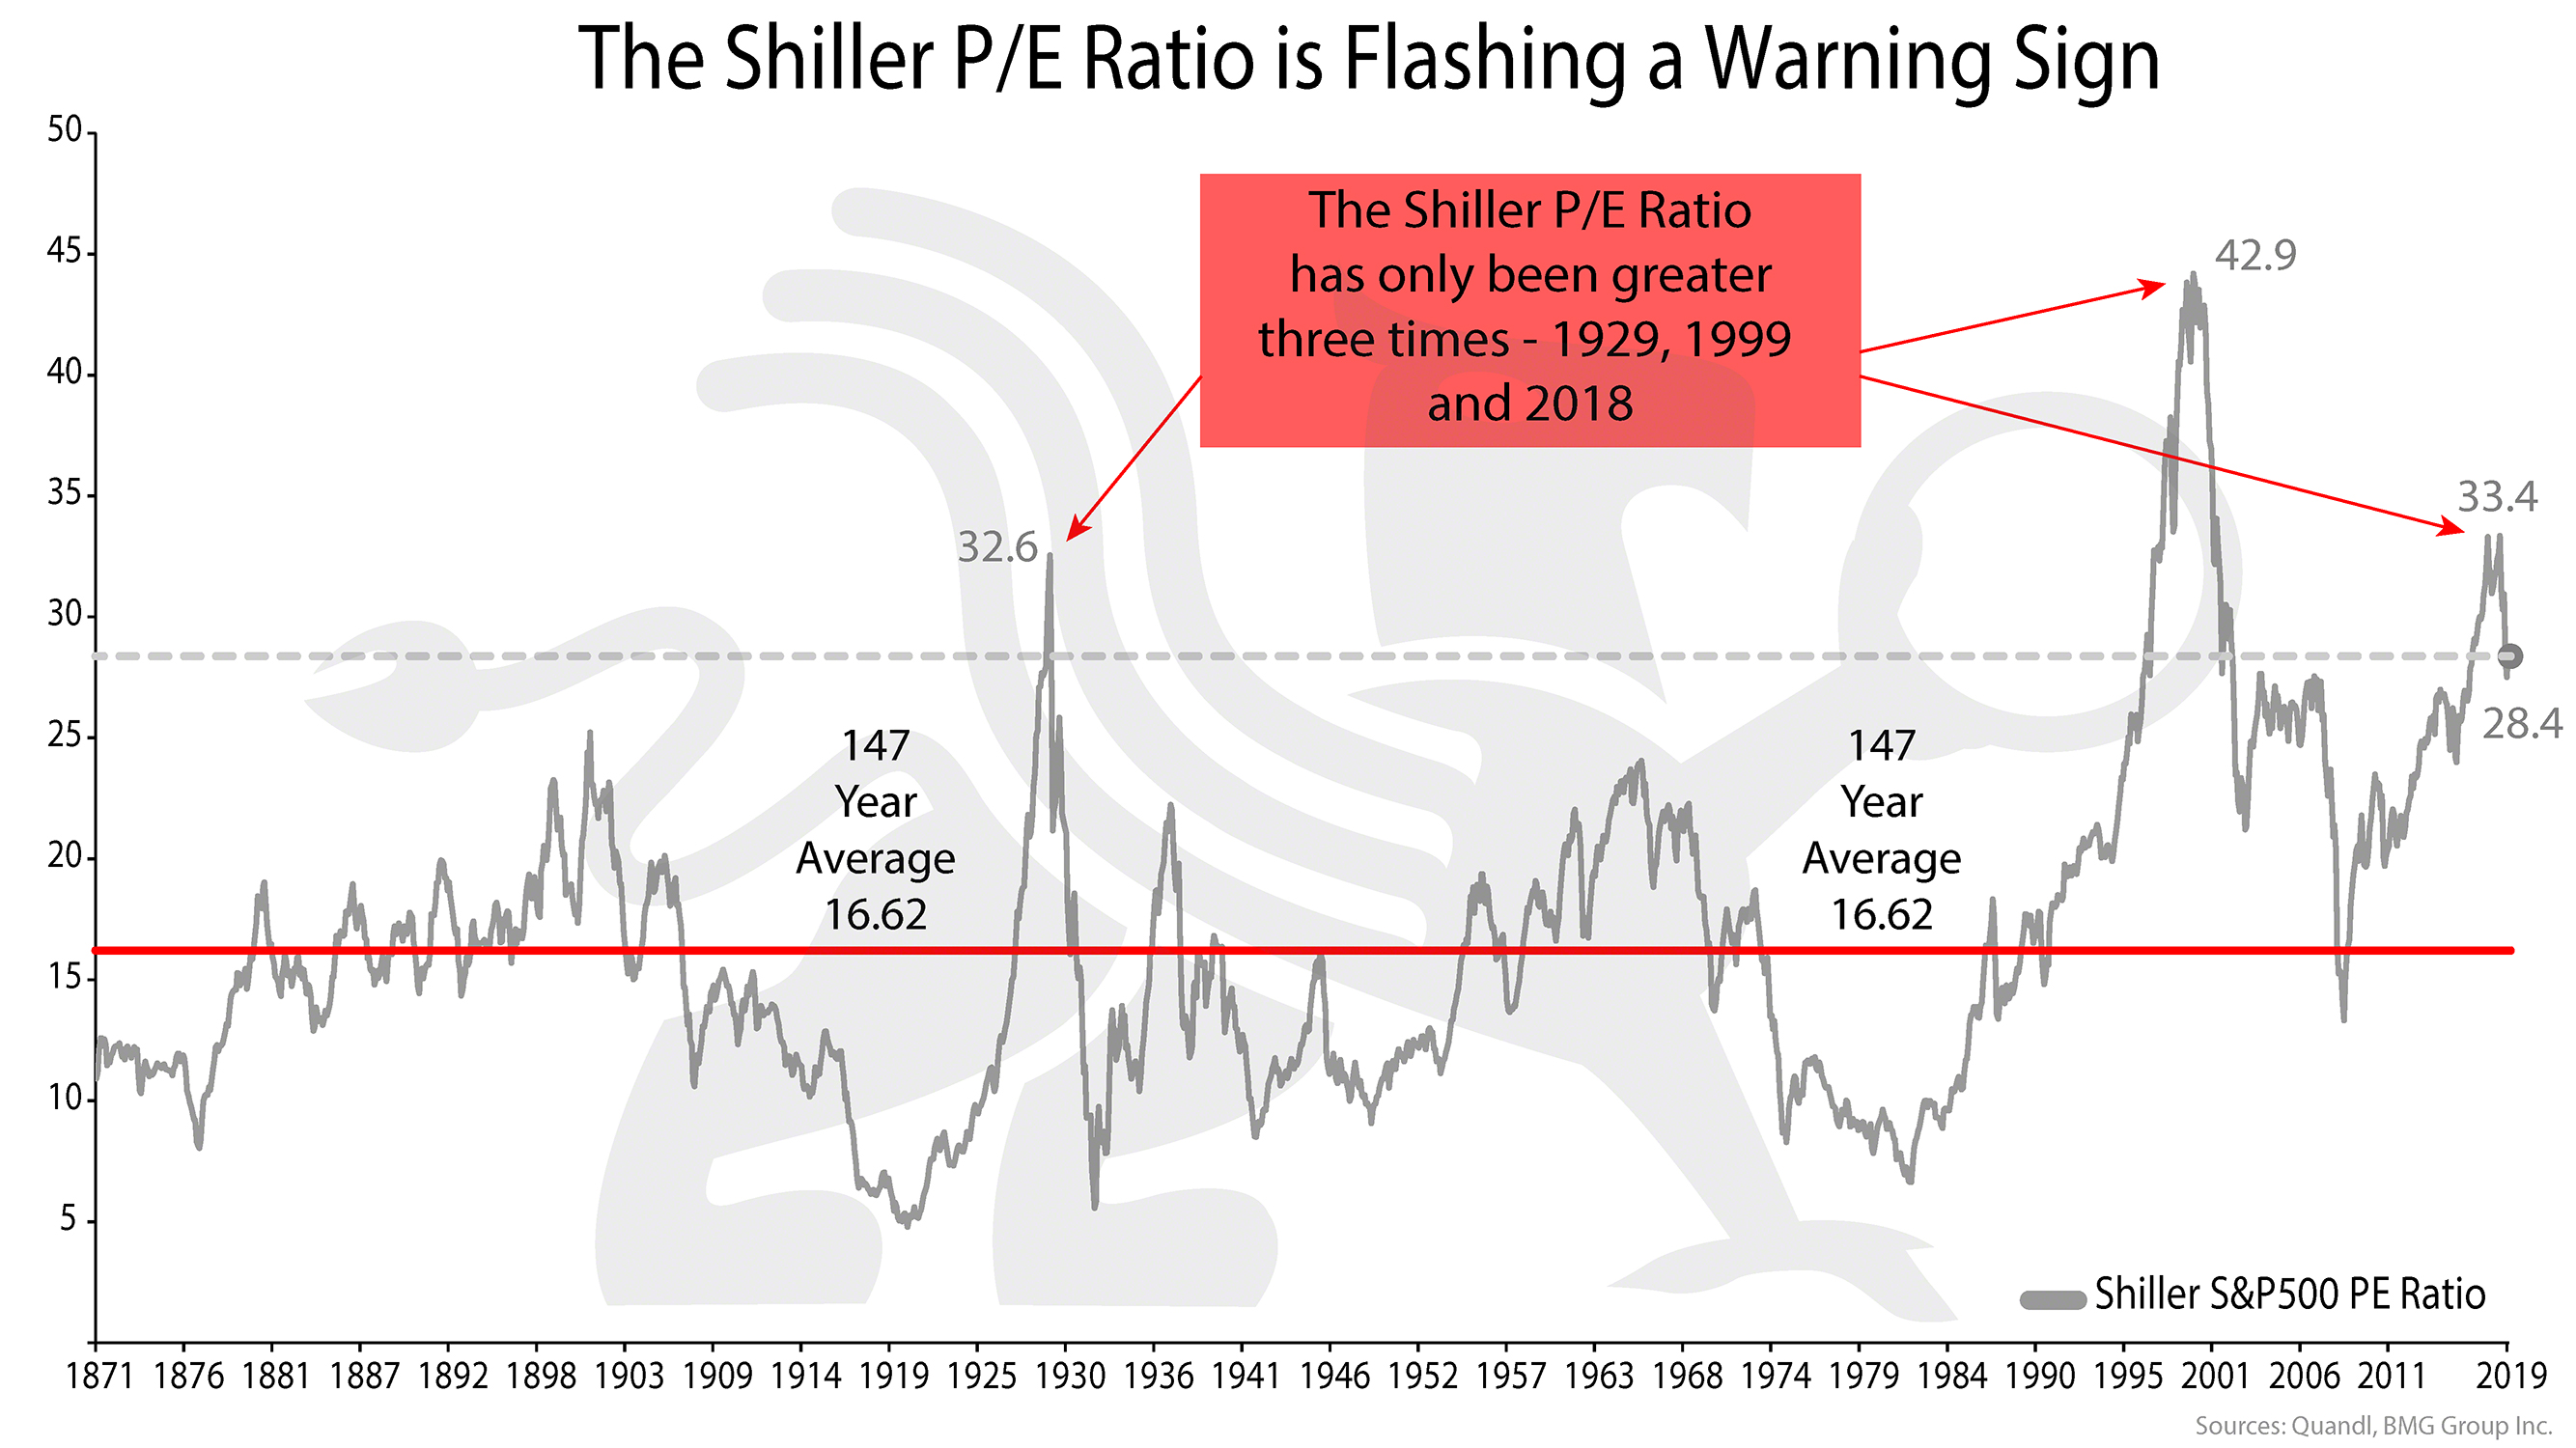 Shiller P/E Ratio is Flashing a Warning Sign. It has only been greater three times | BMG DIY Investor